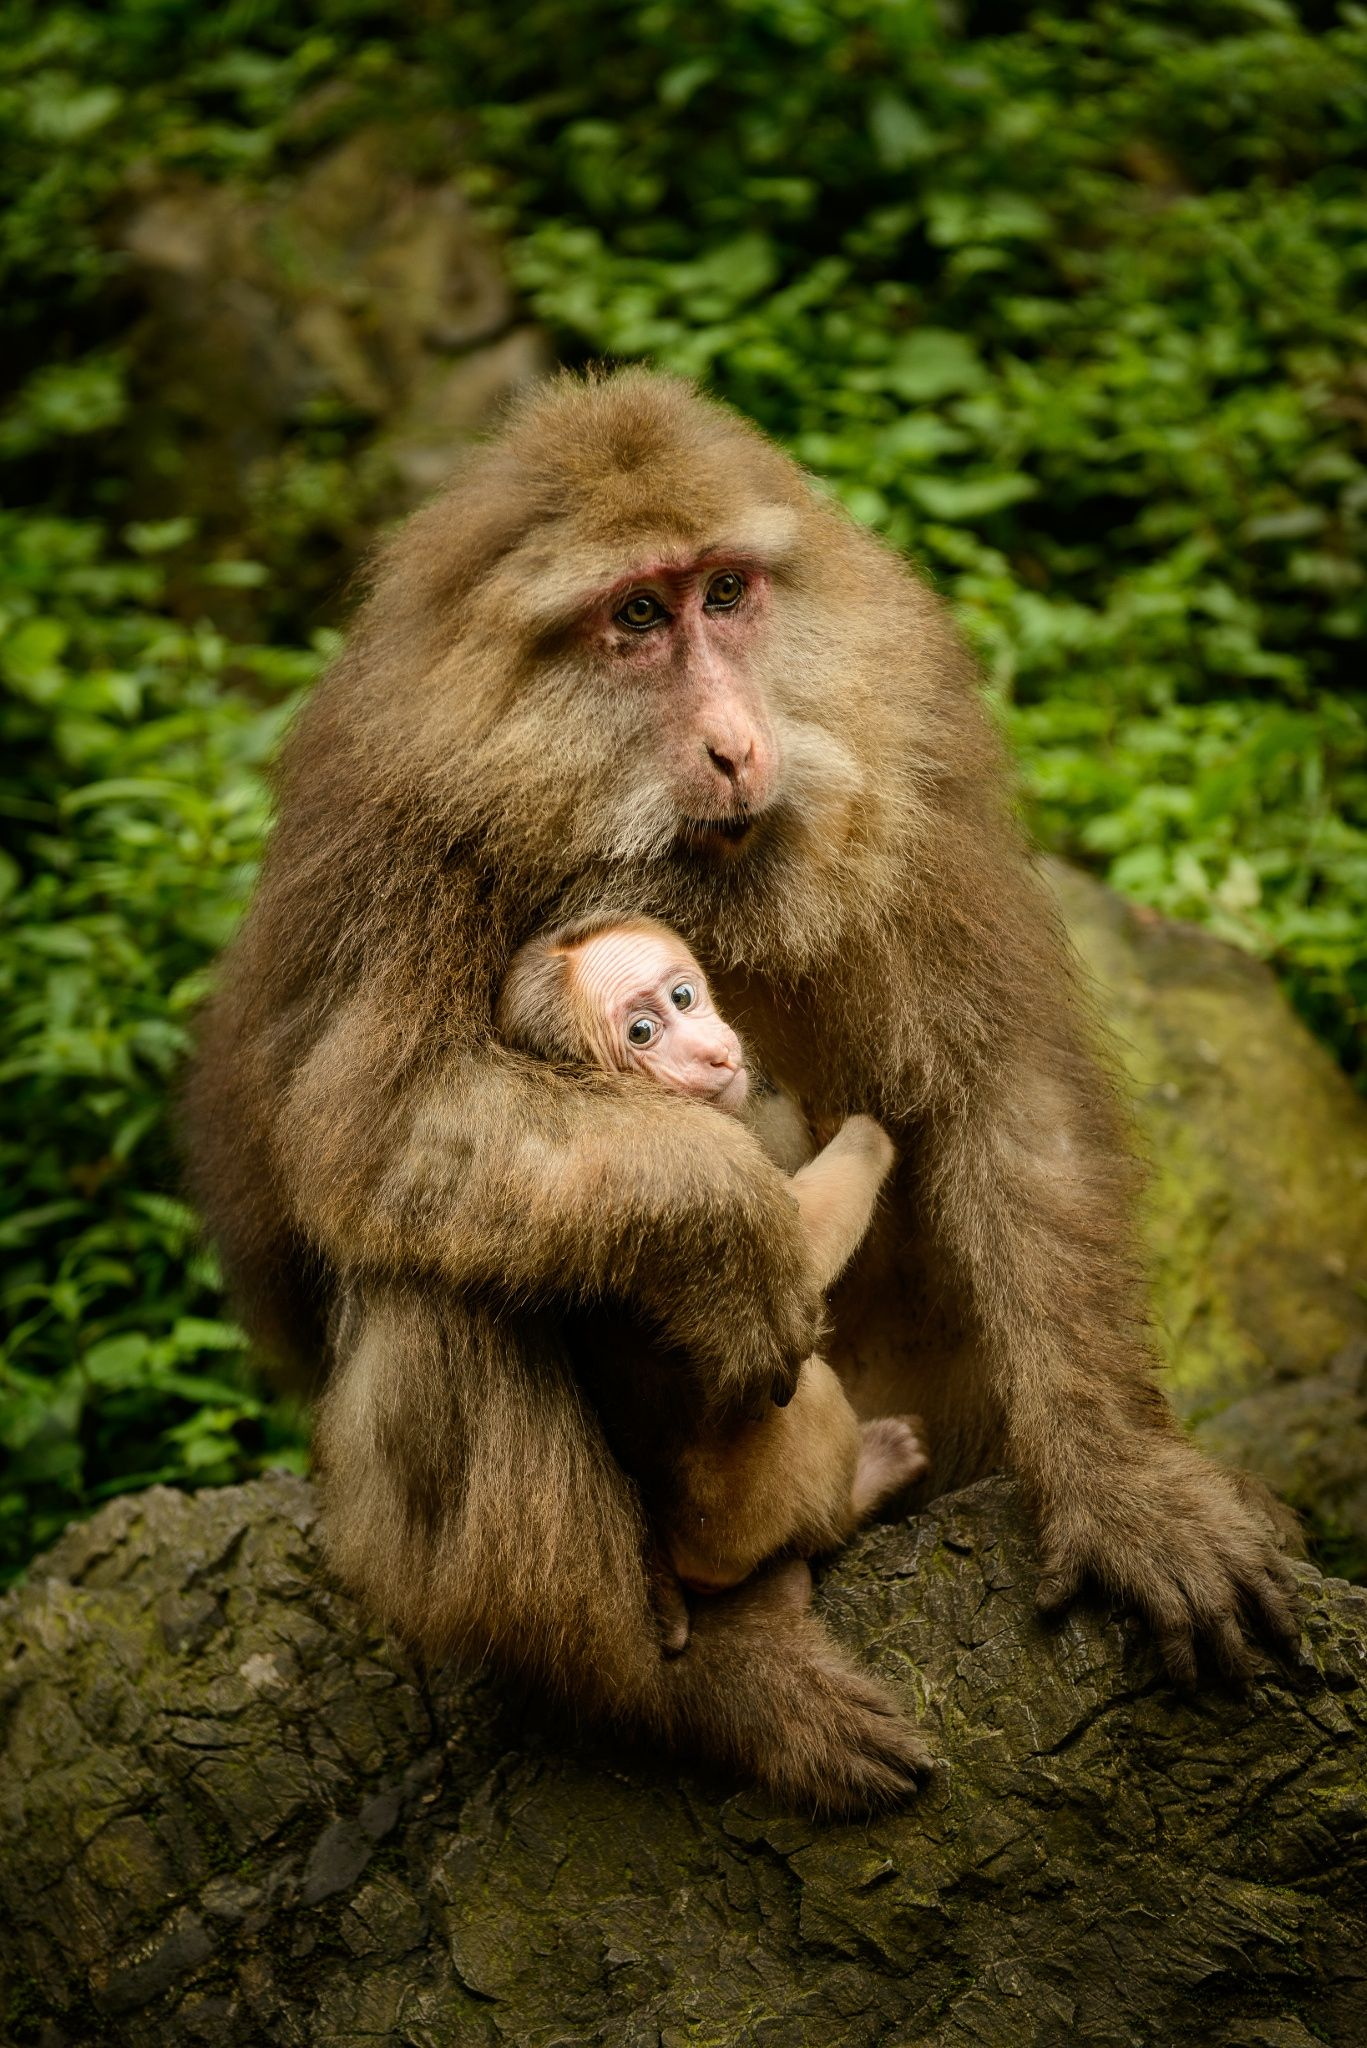 Macaque Mother & Child by Chris Rubey - Photo 16963279 - 500px